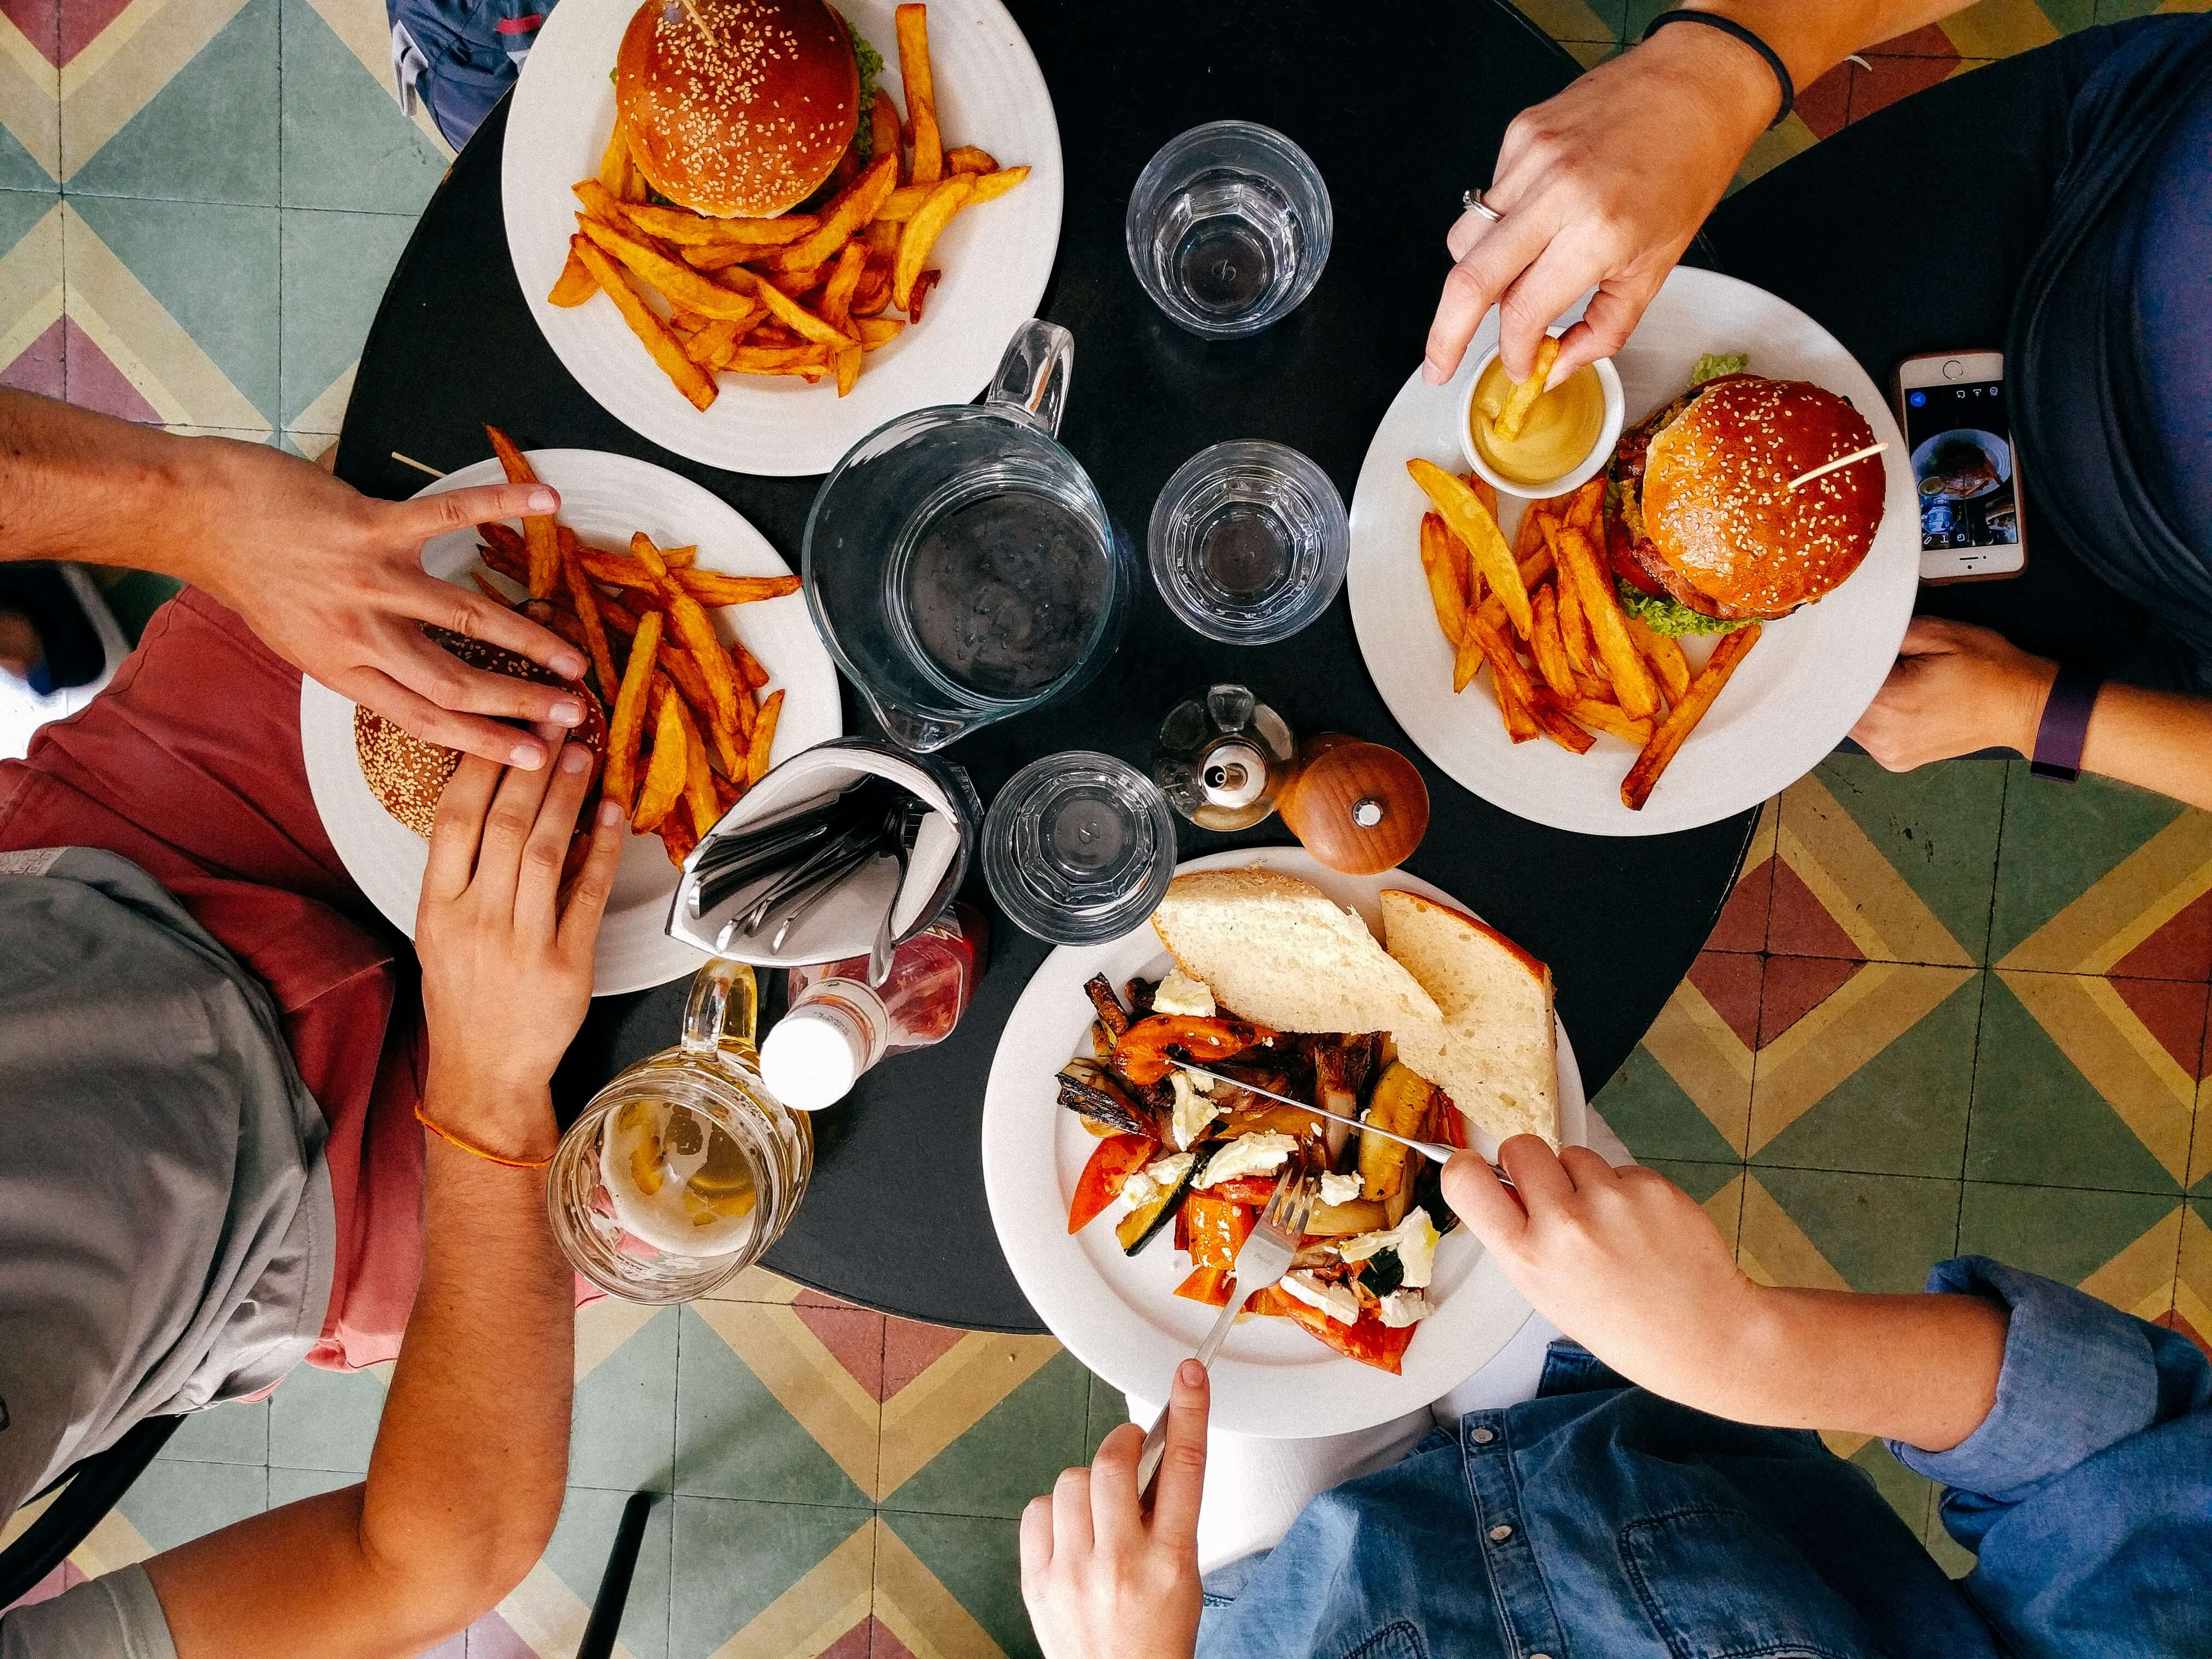 Cheap Eats: How To Make Your Dining Hall Work For You